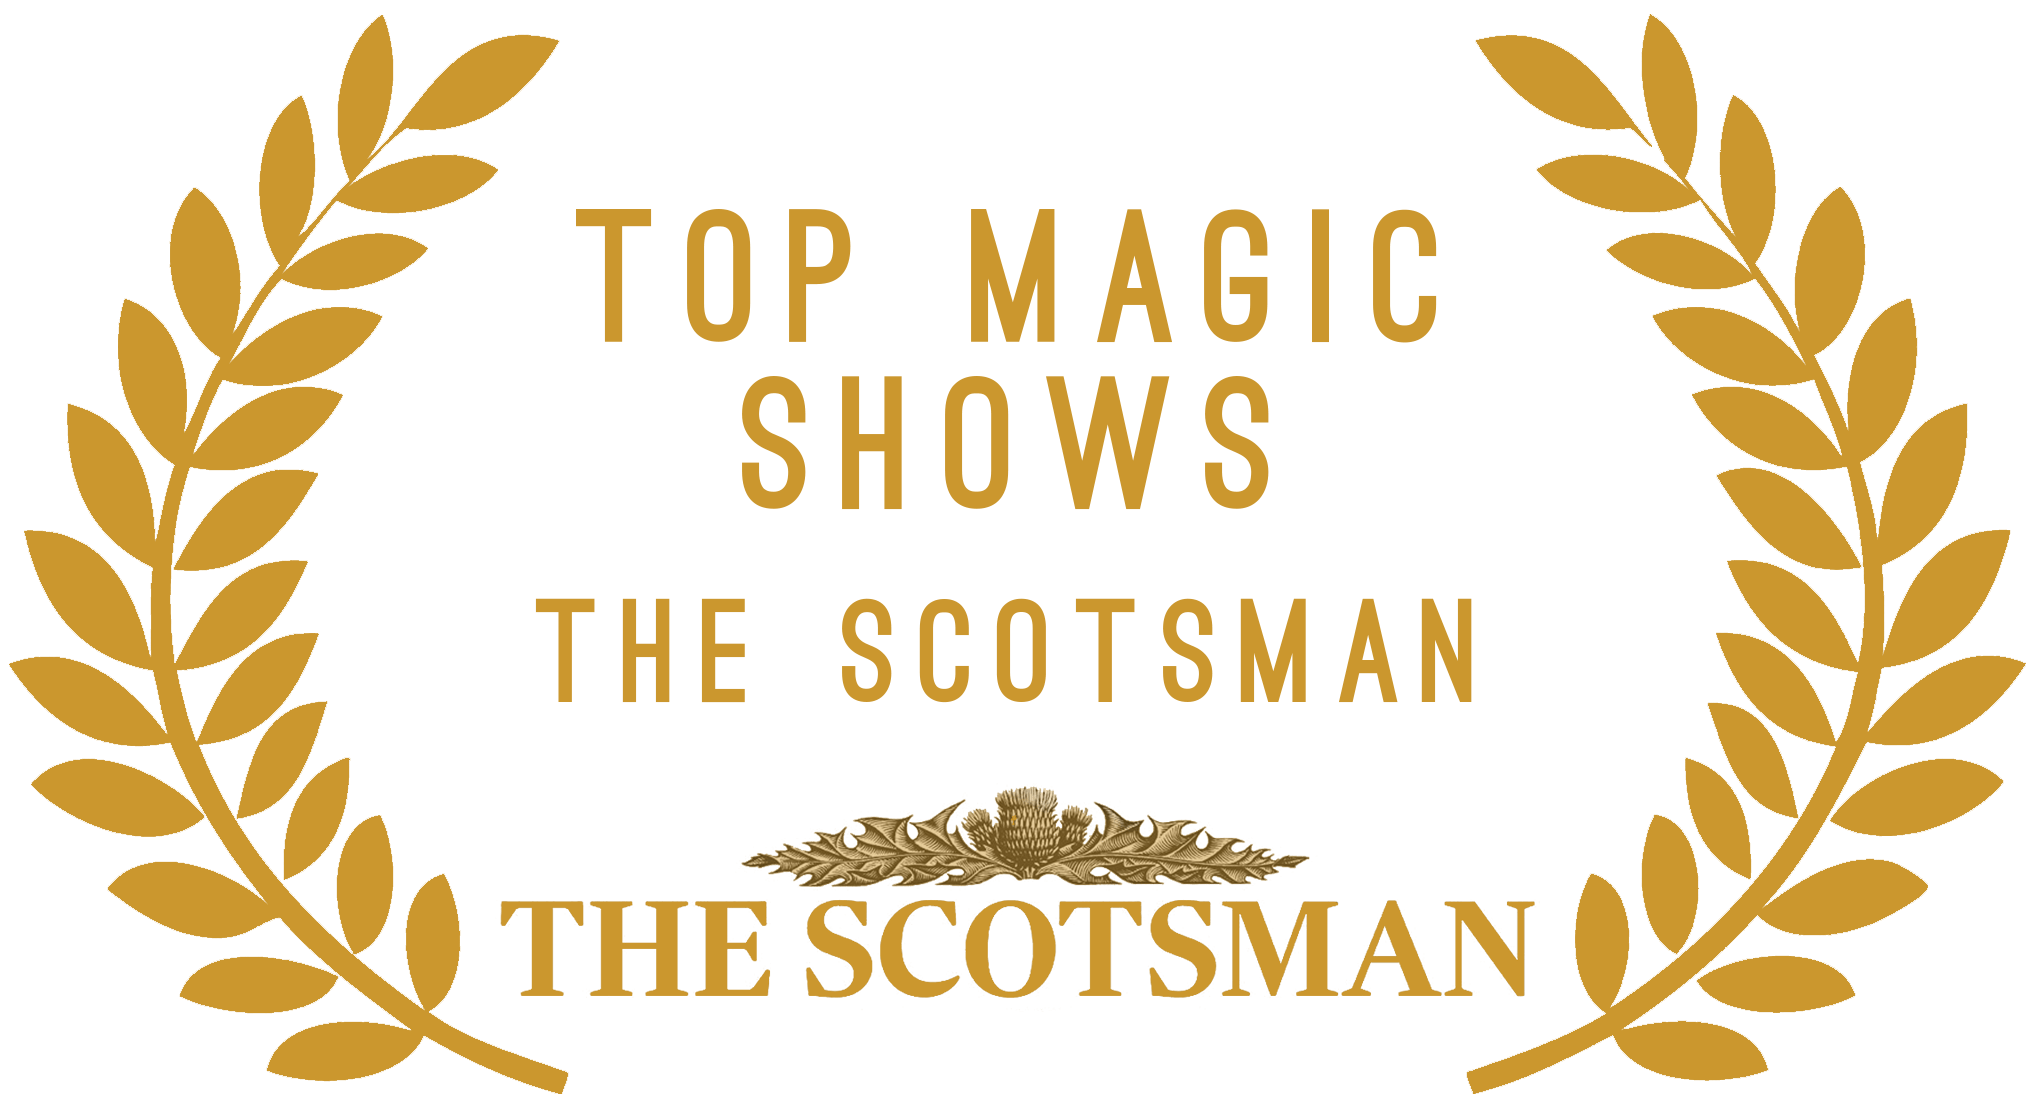 The scotsman top magic show edinburgh fringe magic show aaron calvert declassified review